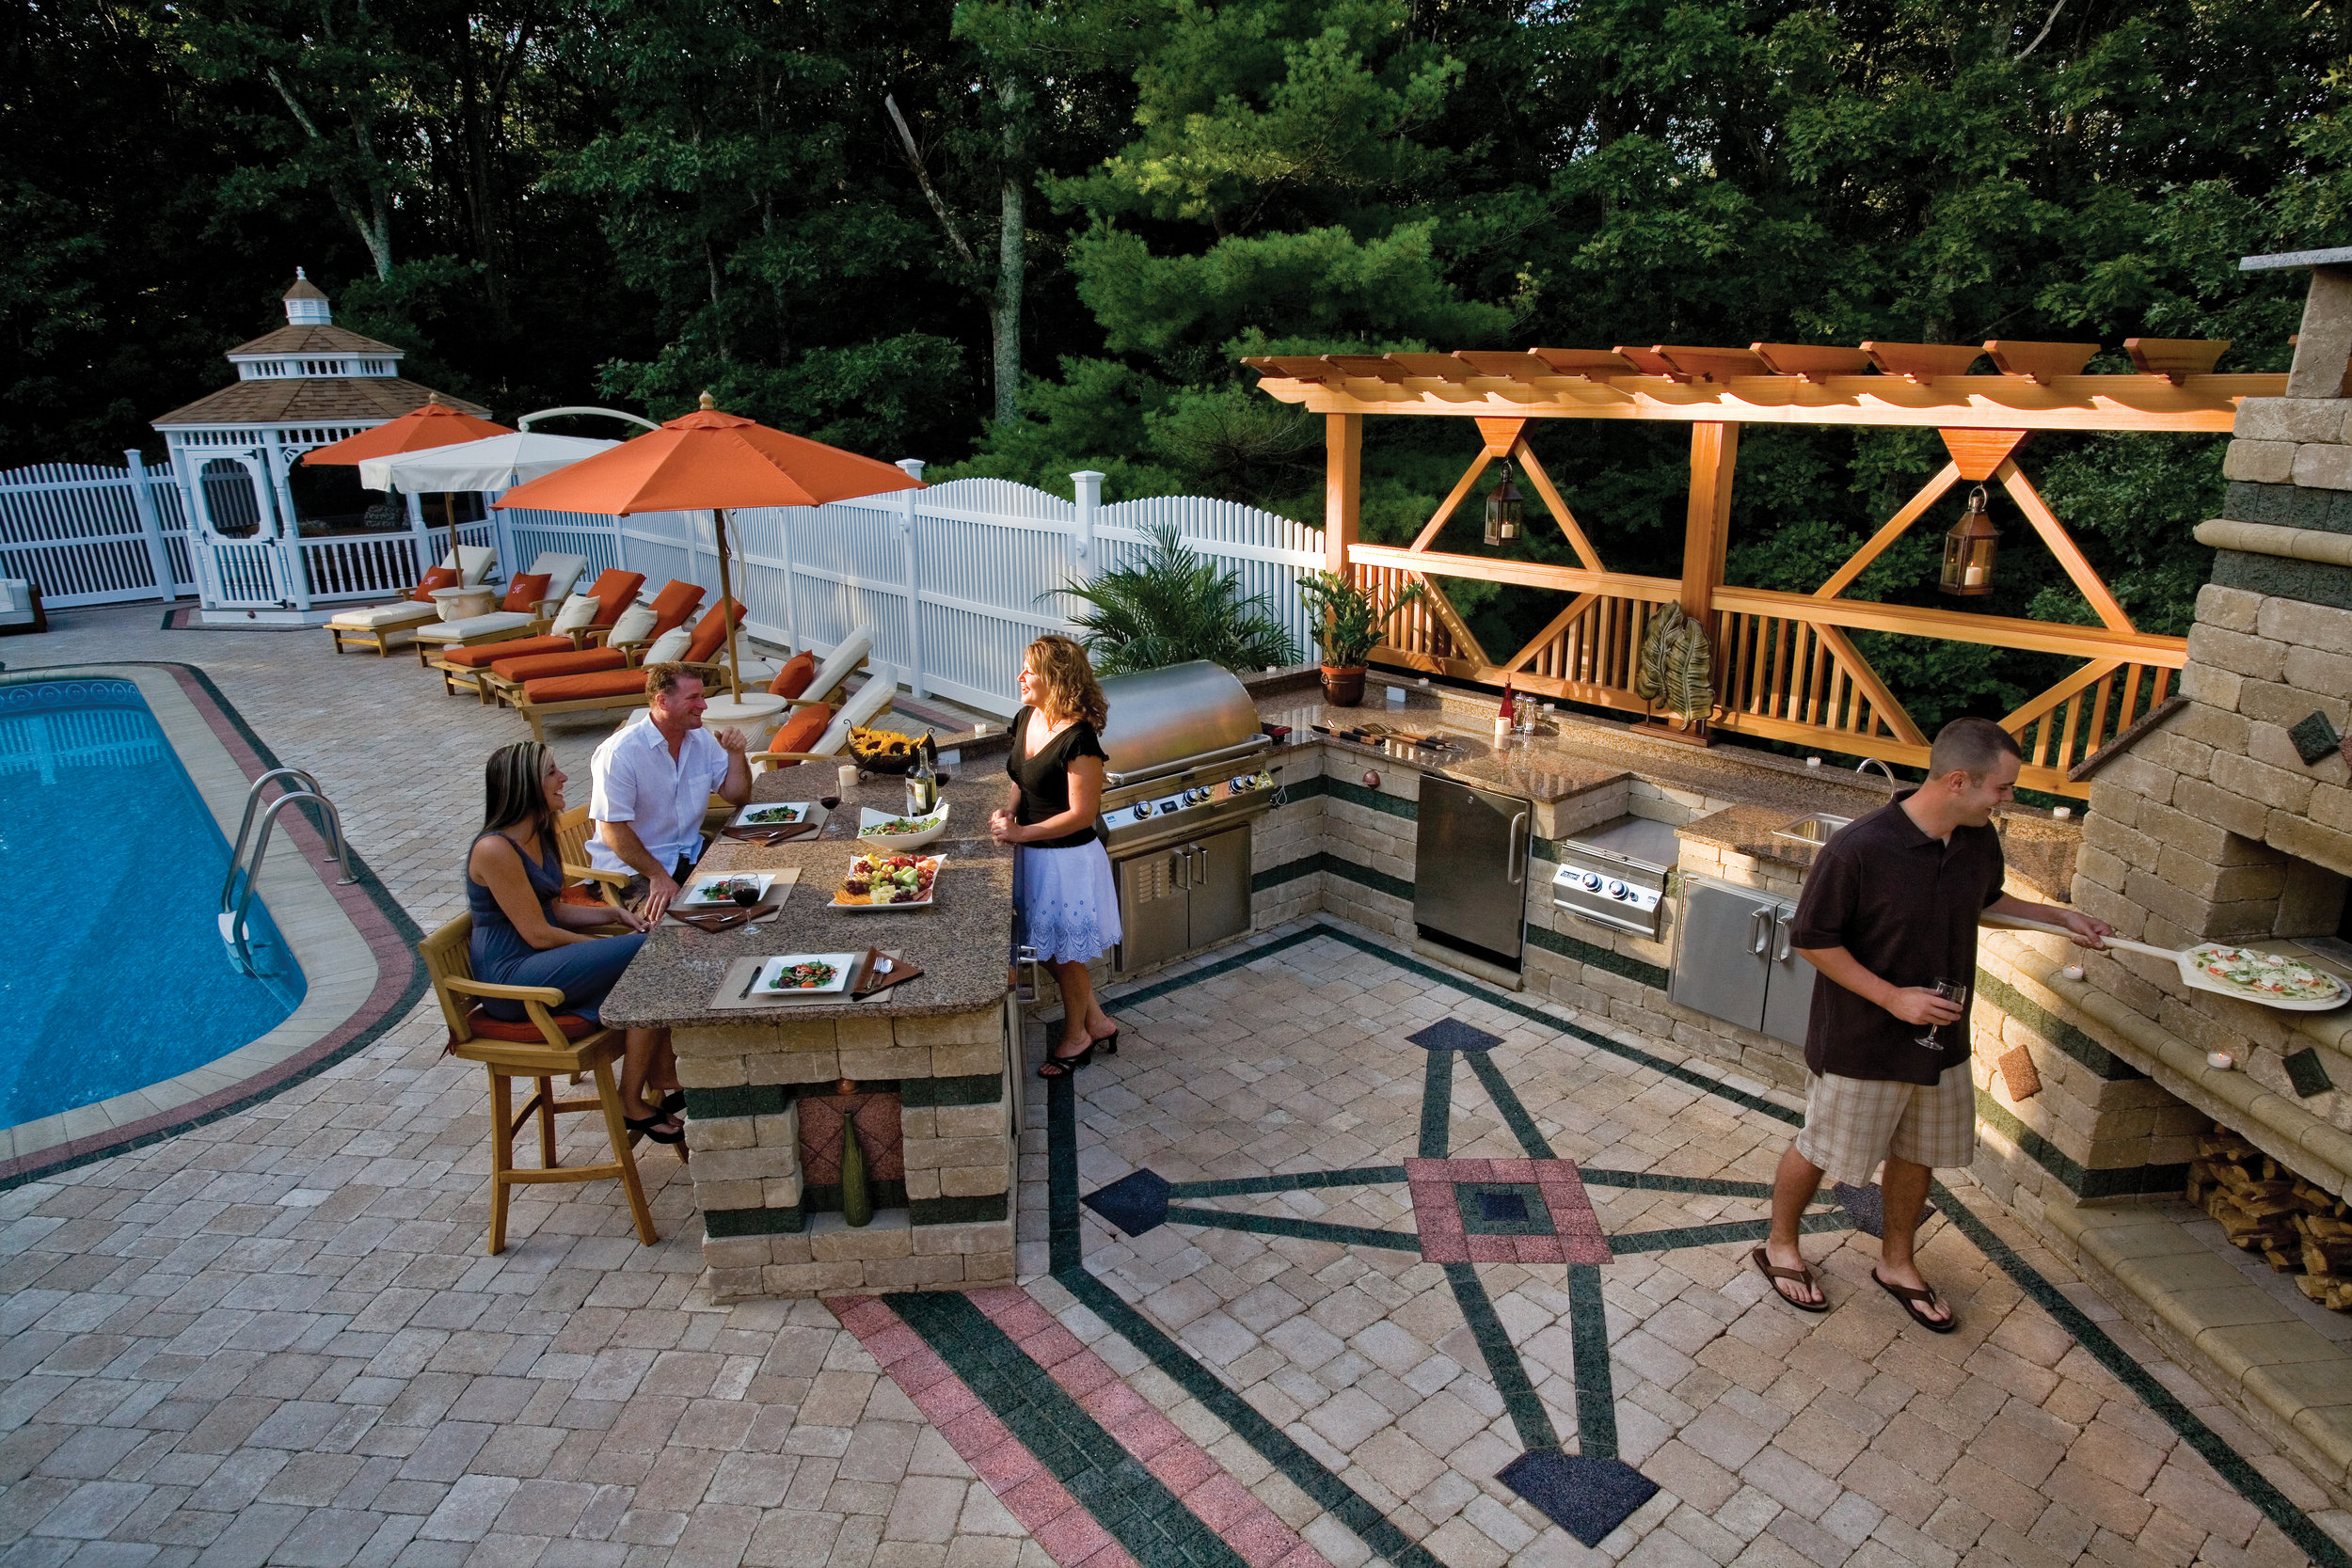 Maximize Your Poolside Experience This Summer with an Outdoor Kitchen Featuring a Refrigerator and Ice Maker and Other Must-Haves in Milford MA